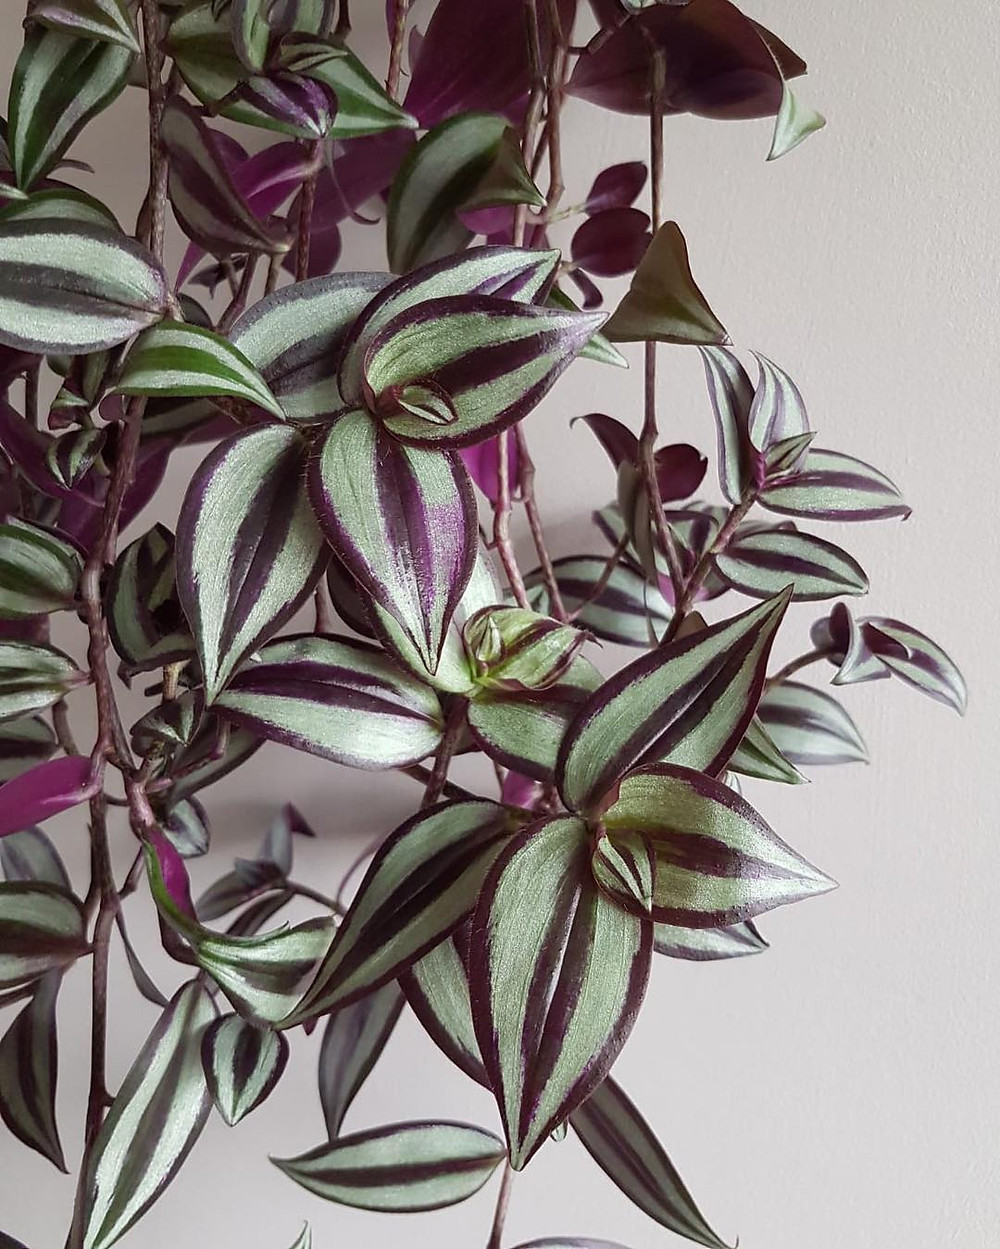 Wandering Jew Houseplants You Can Propagate From Cuttings